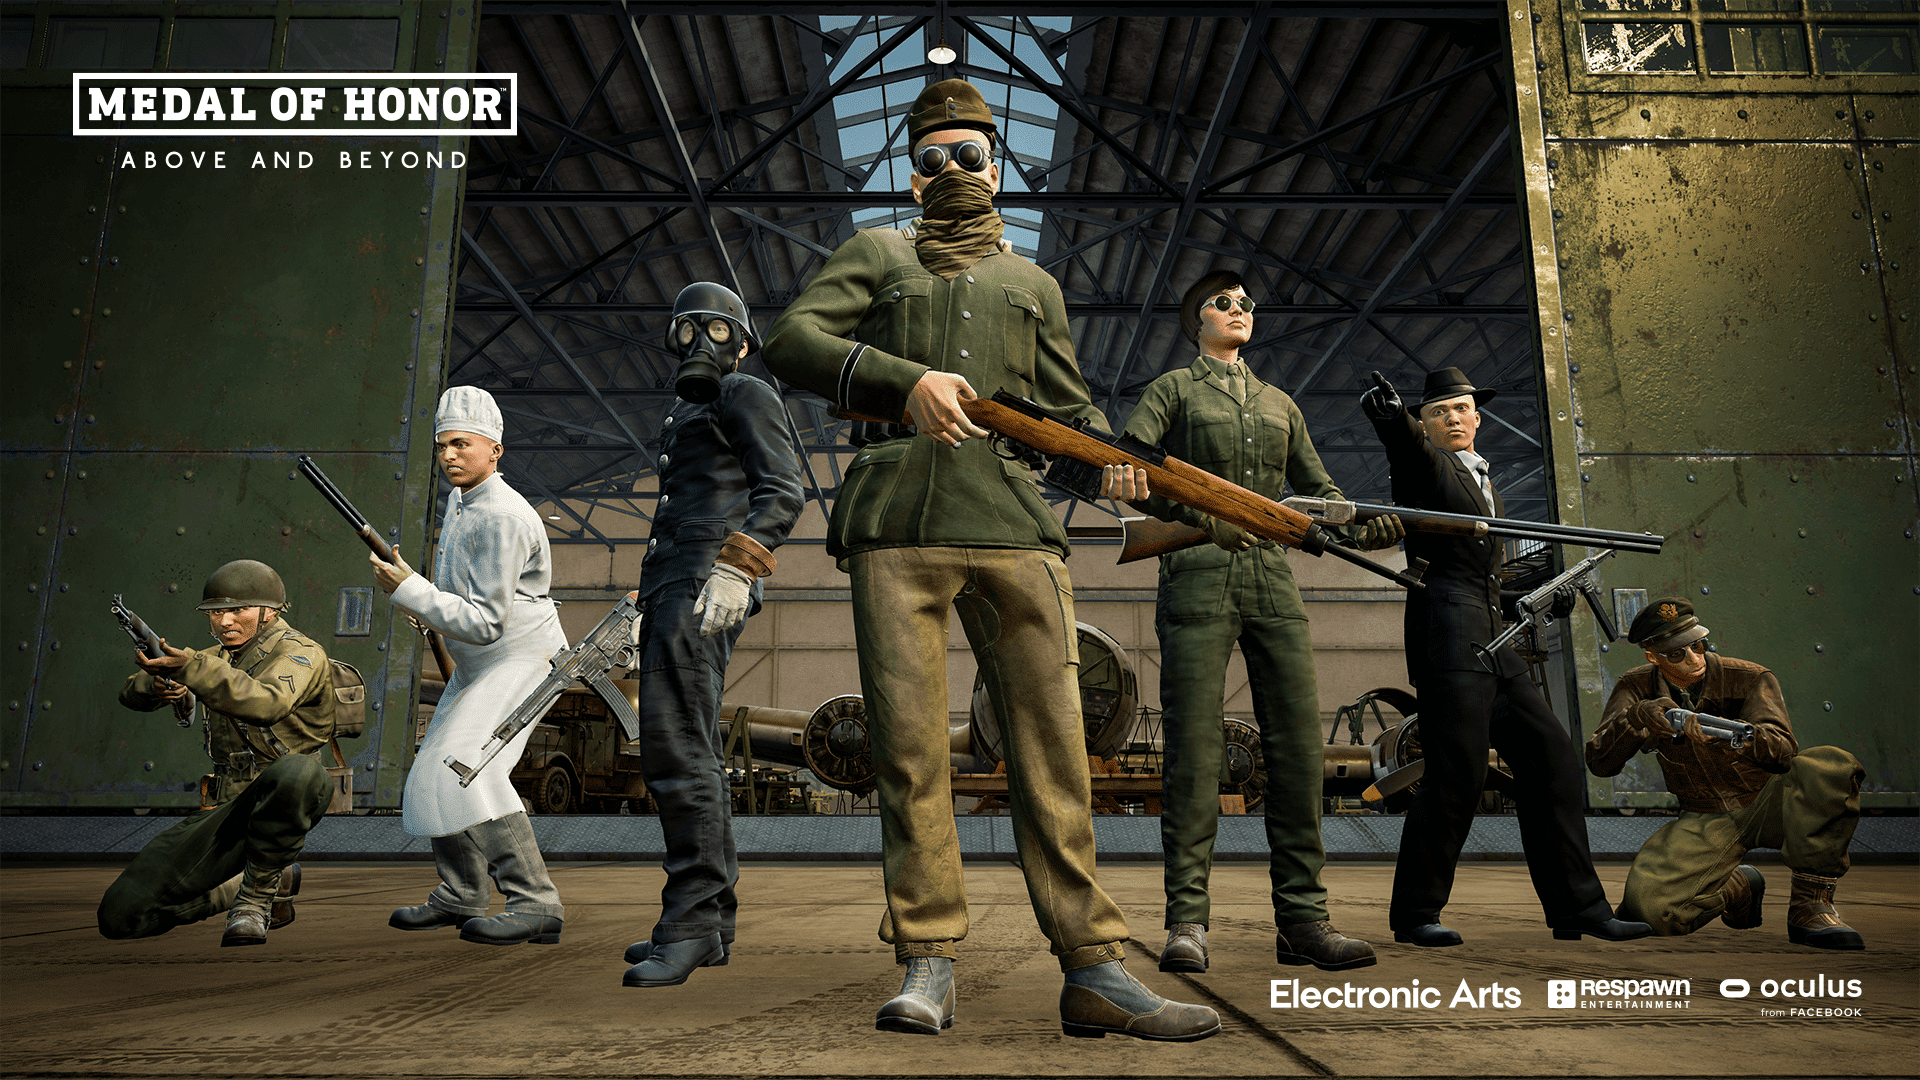 medal of honor above and beyond character skins